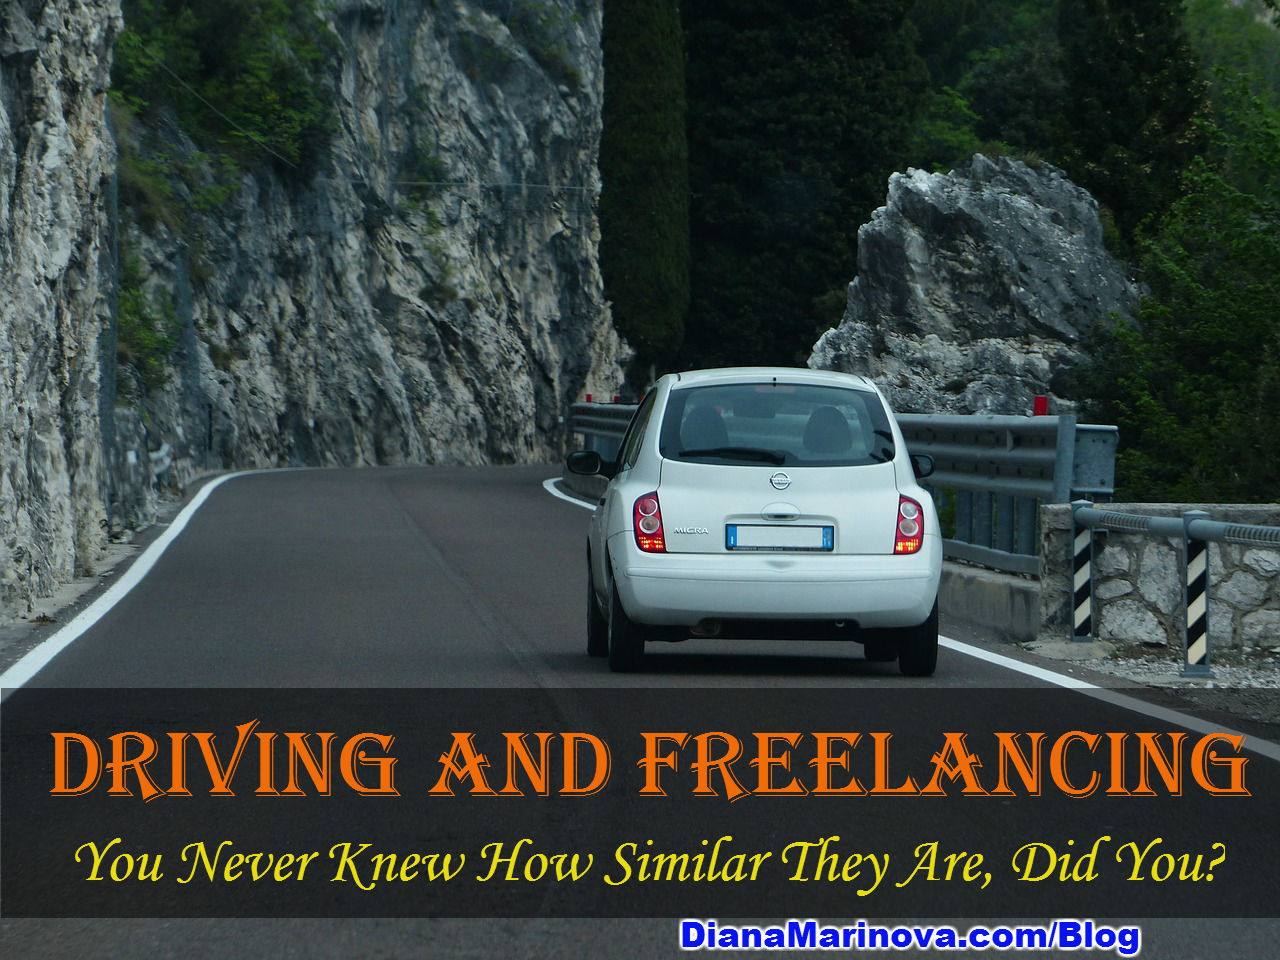 You Never Knew How Similar Driving and Freelancing Are